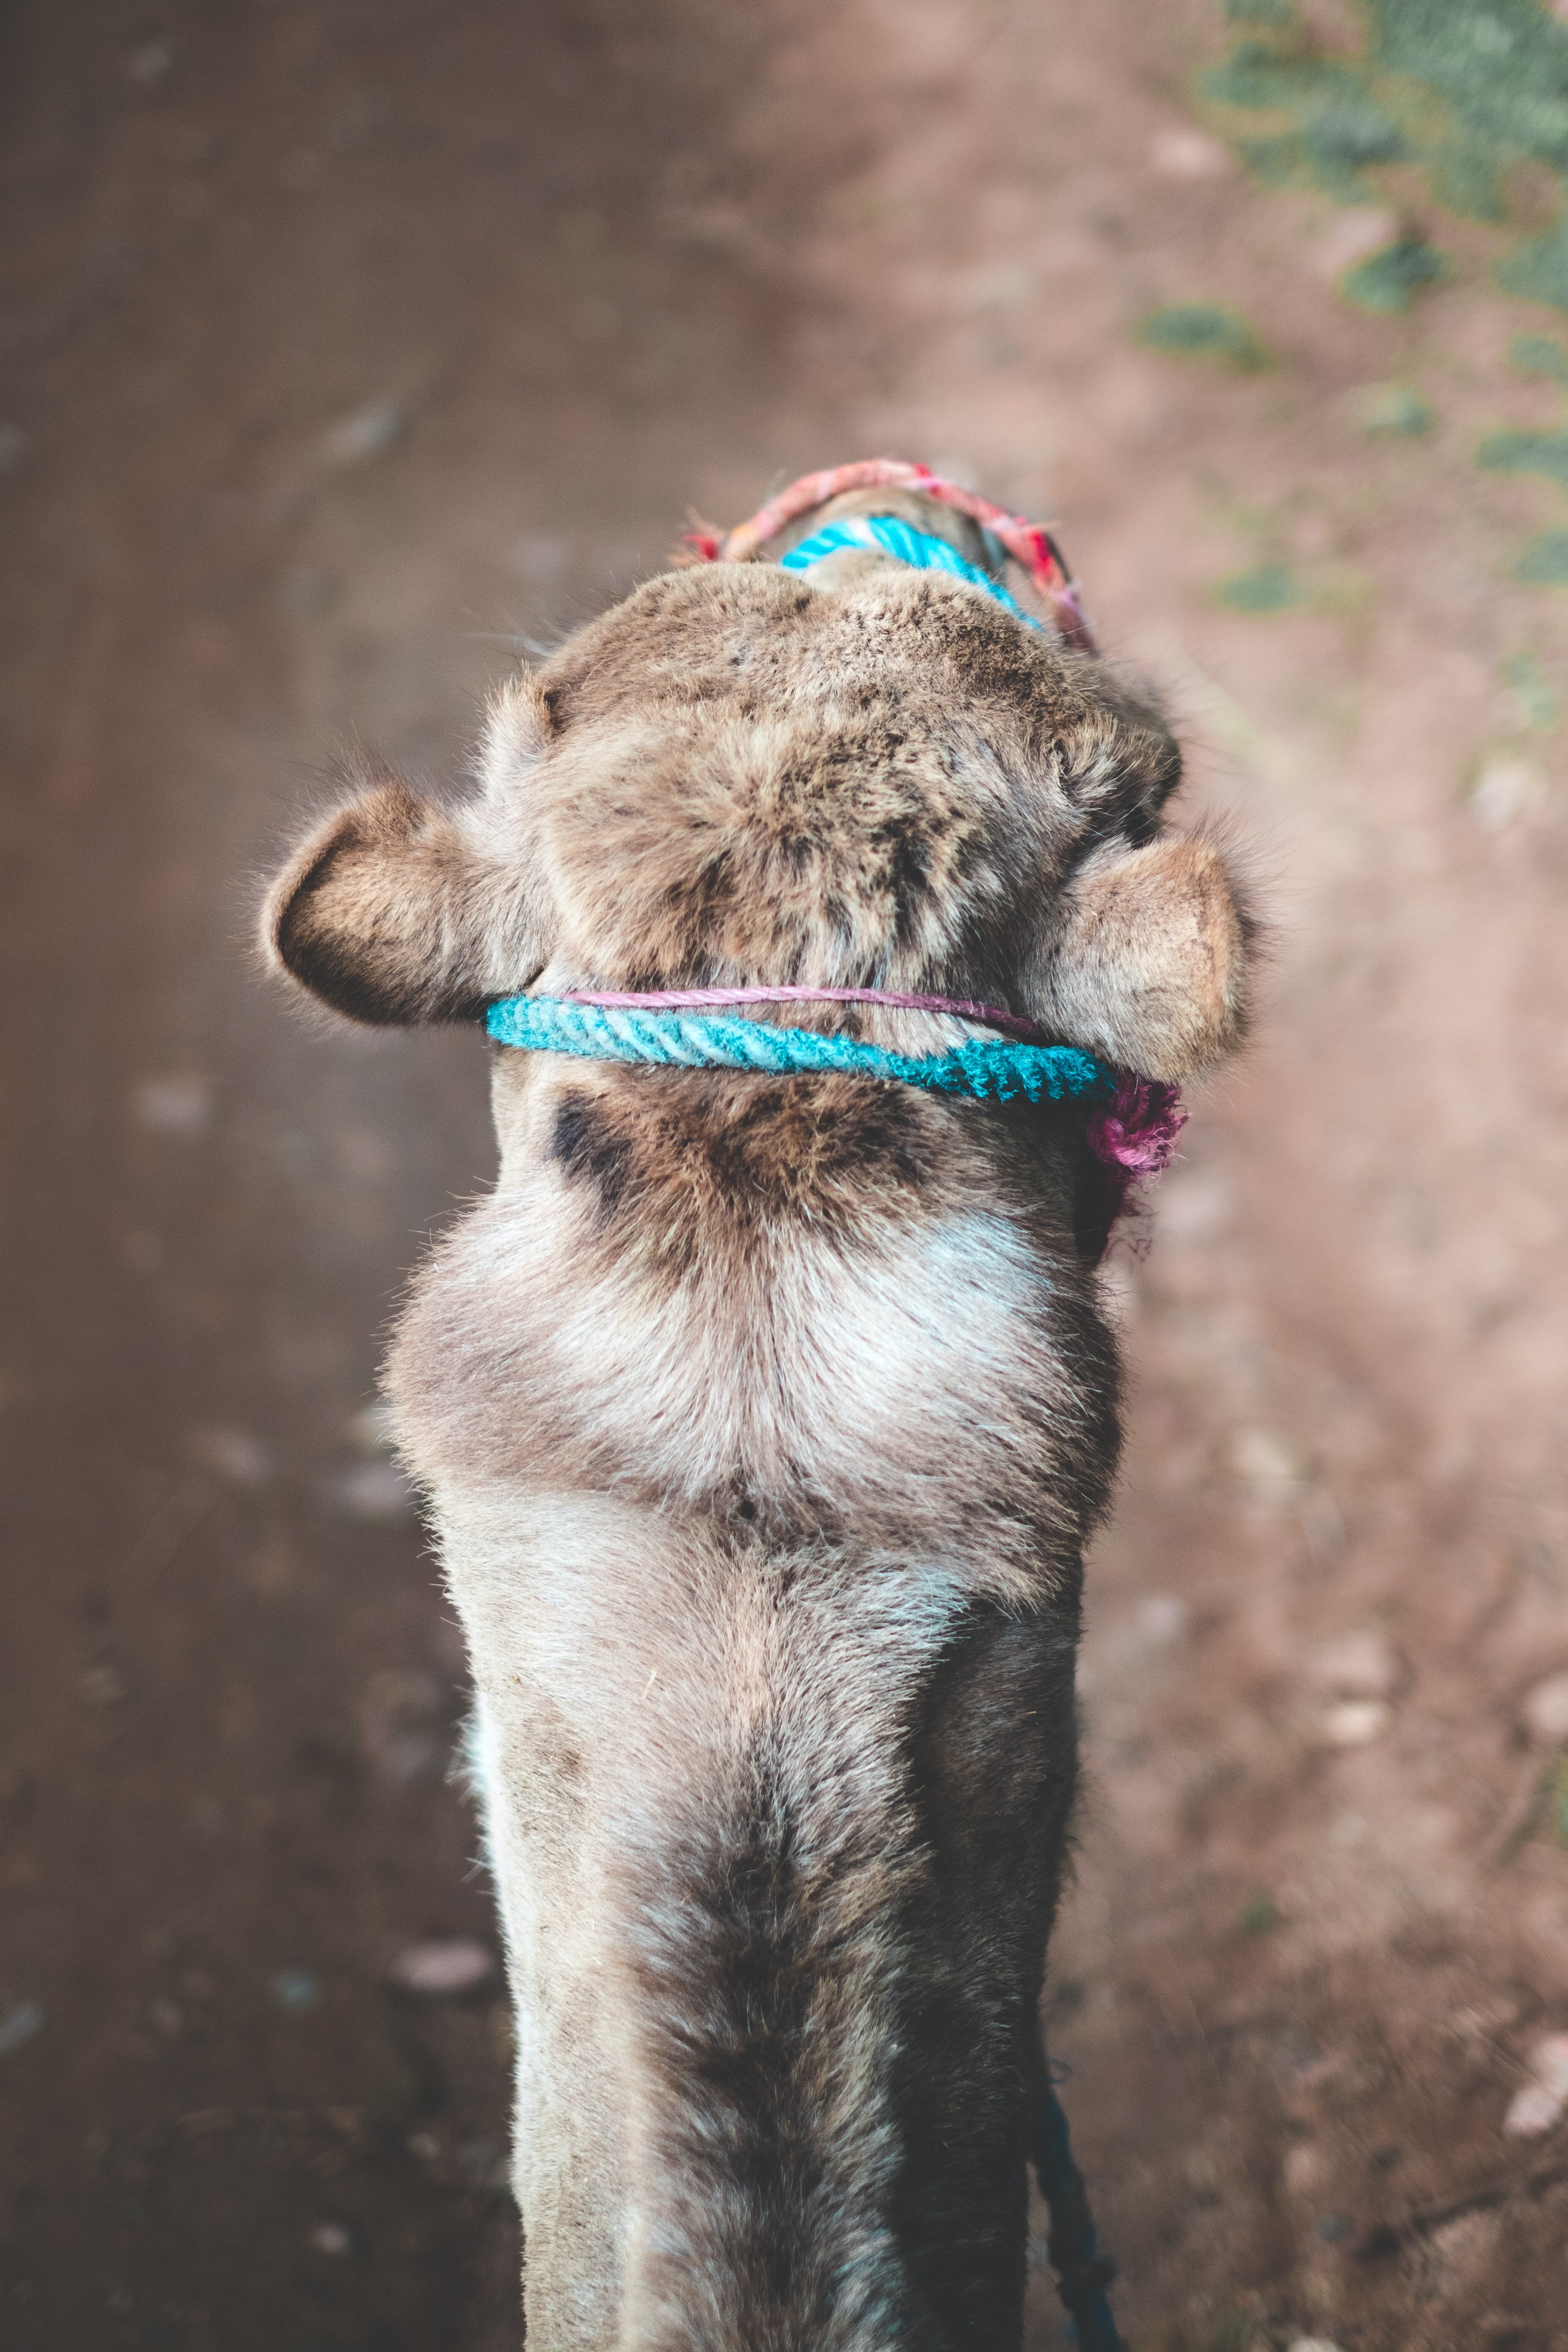 camel with rope on its head